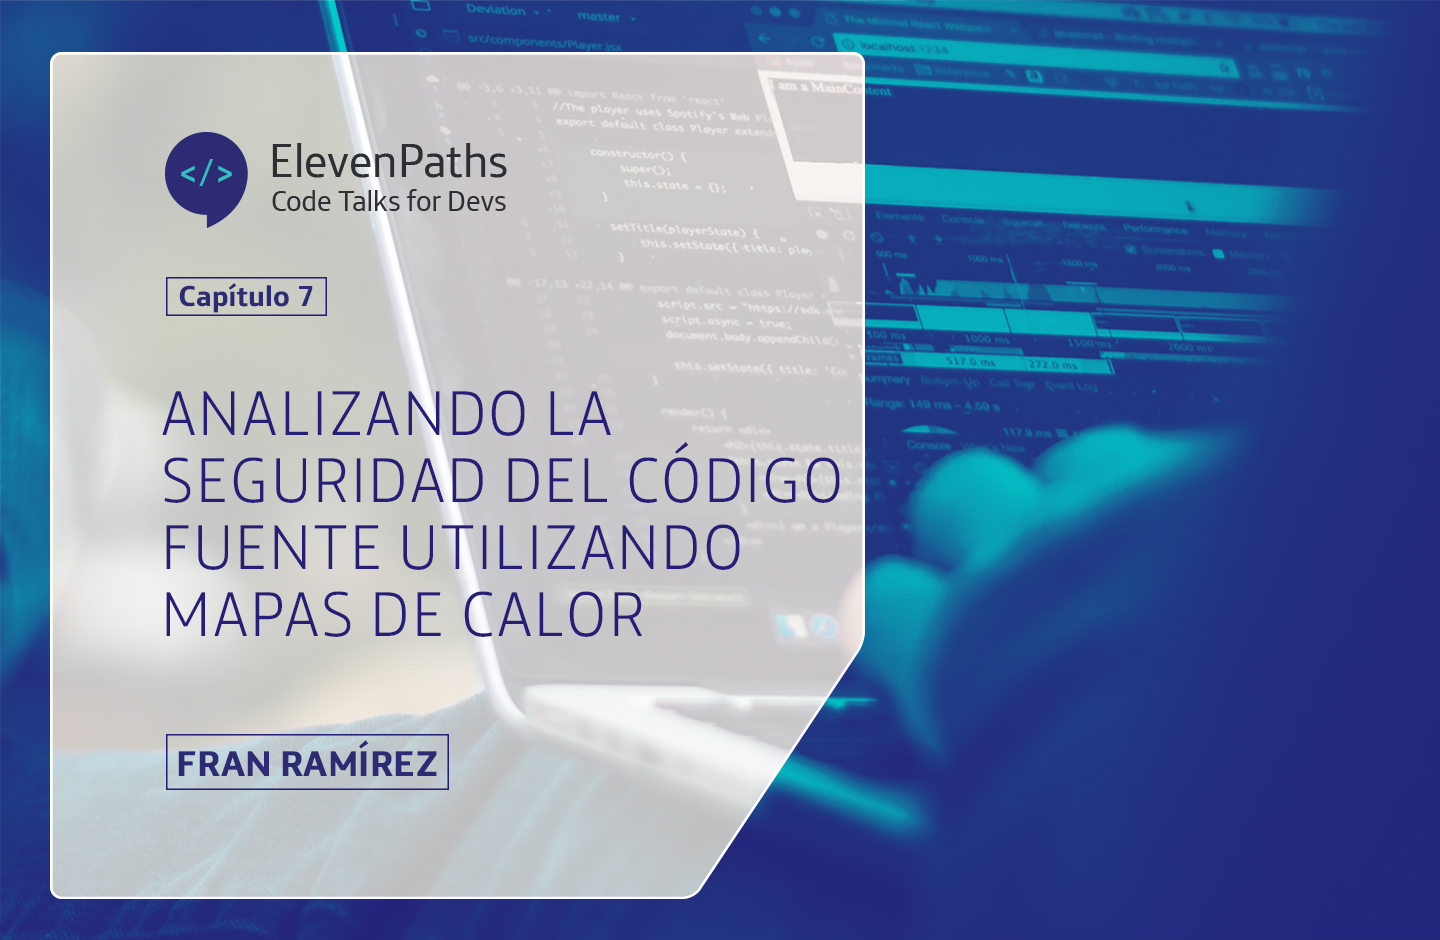 Code Talks for Devs – Analizando la seguridad del código fuente utilizando mapas de calor